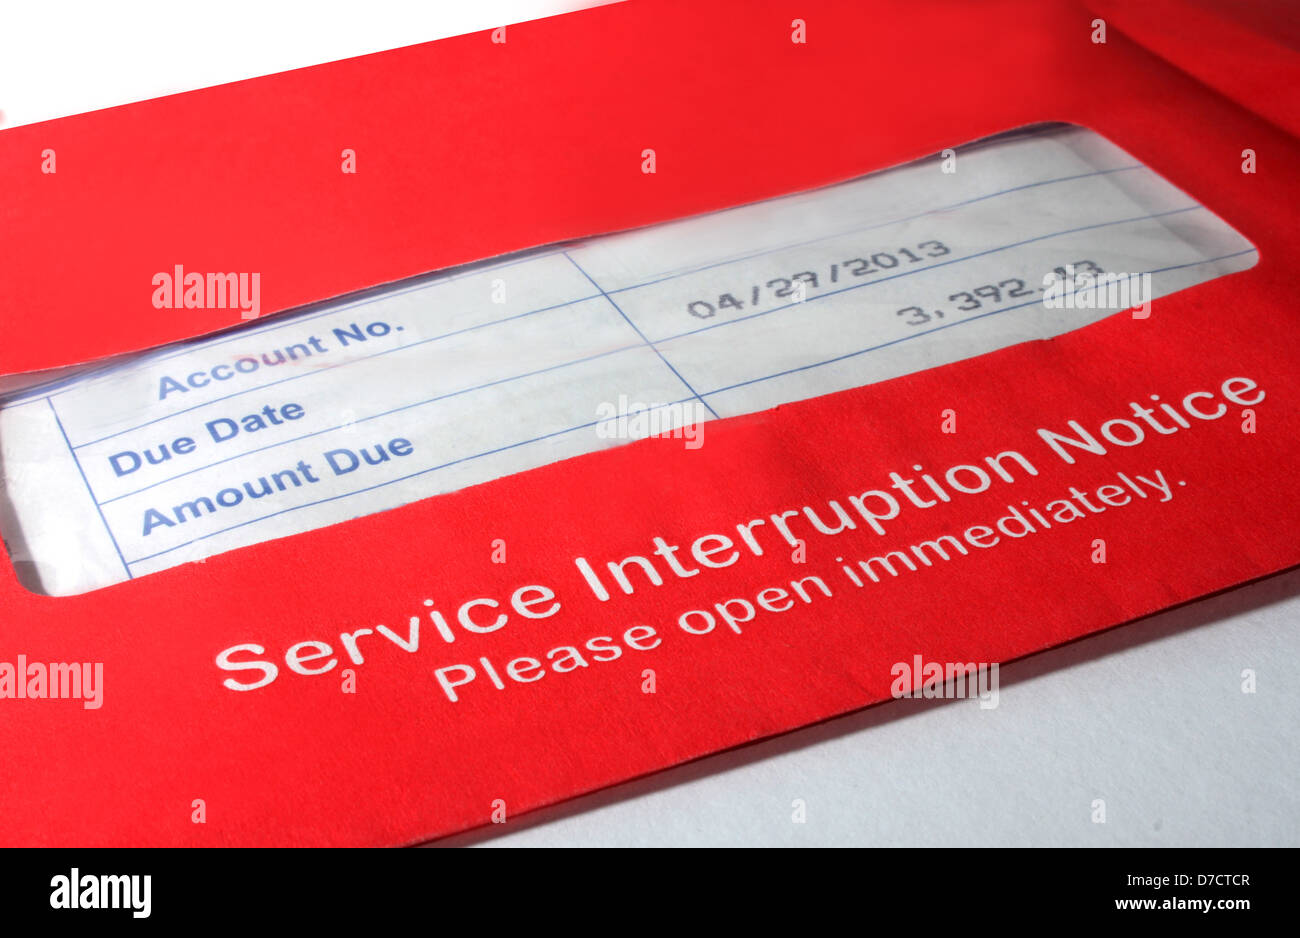 Red envelope containing reminder memo to consumers. - Stock Image